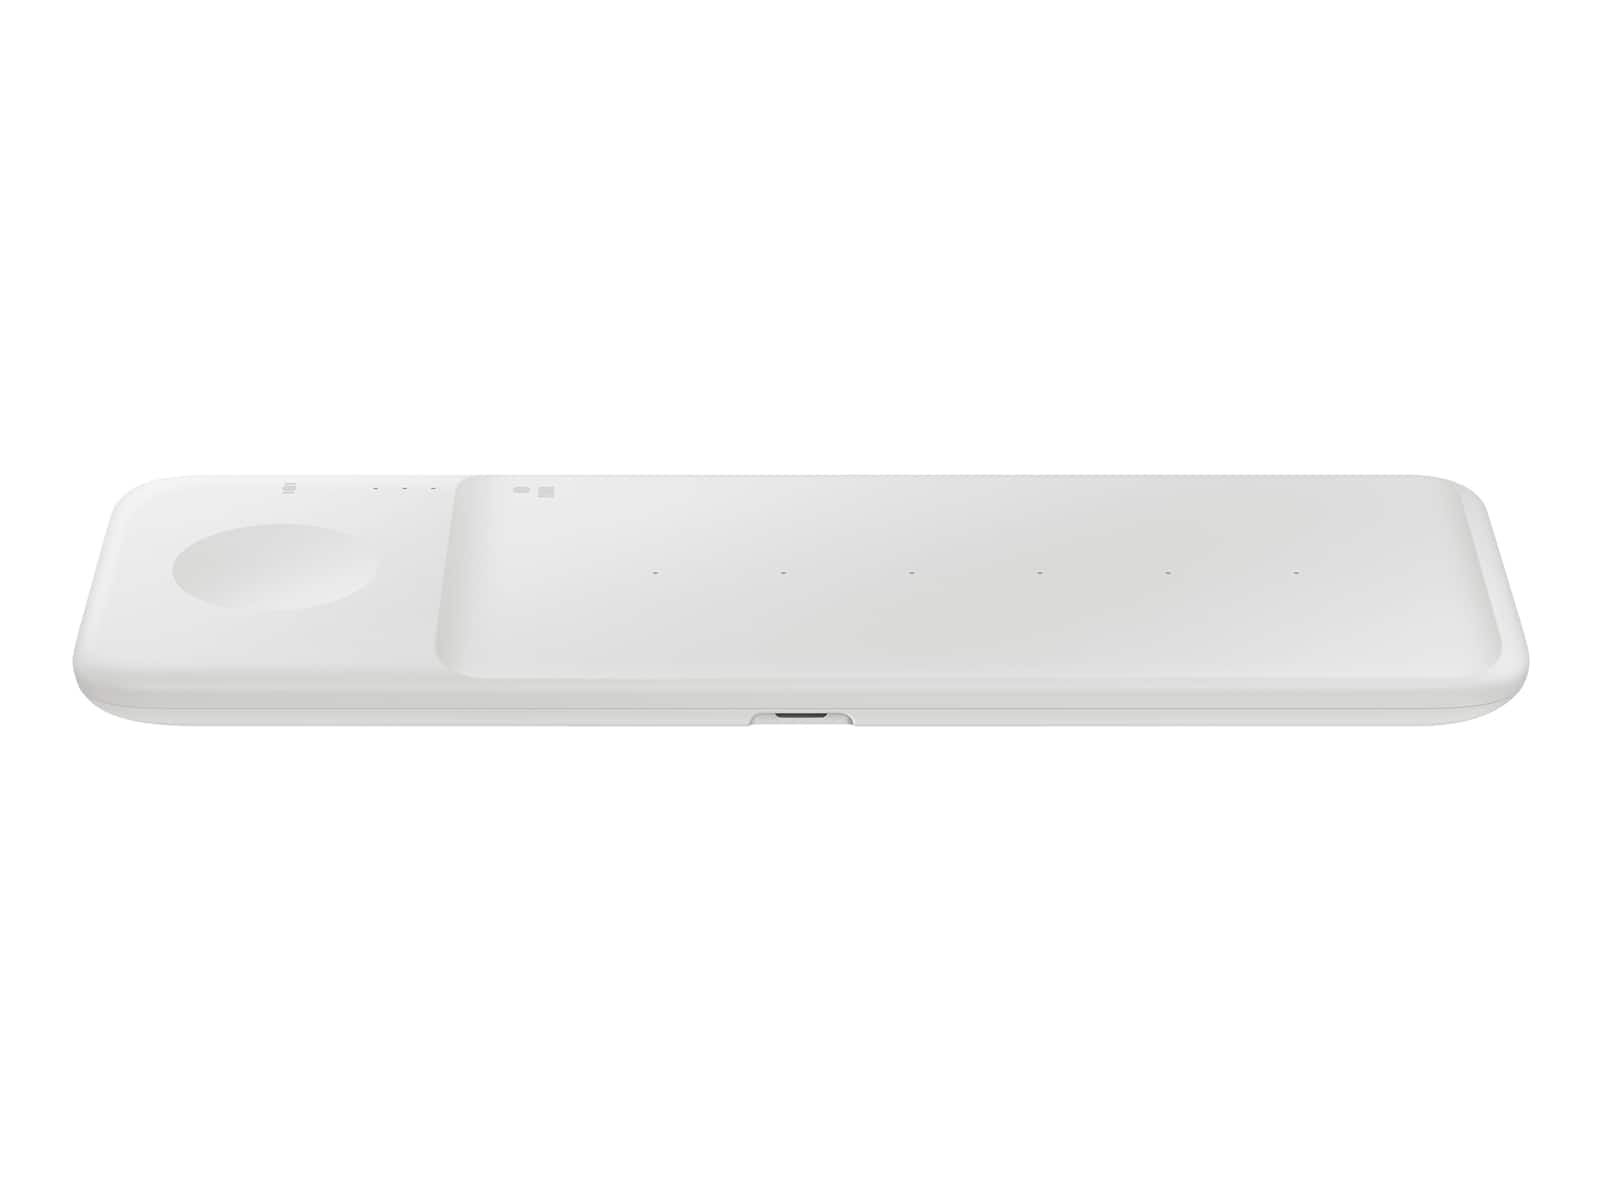 Samsung Wireless Charger Trio (White) - $44.99 with EDU/EPP Discount